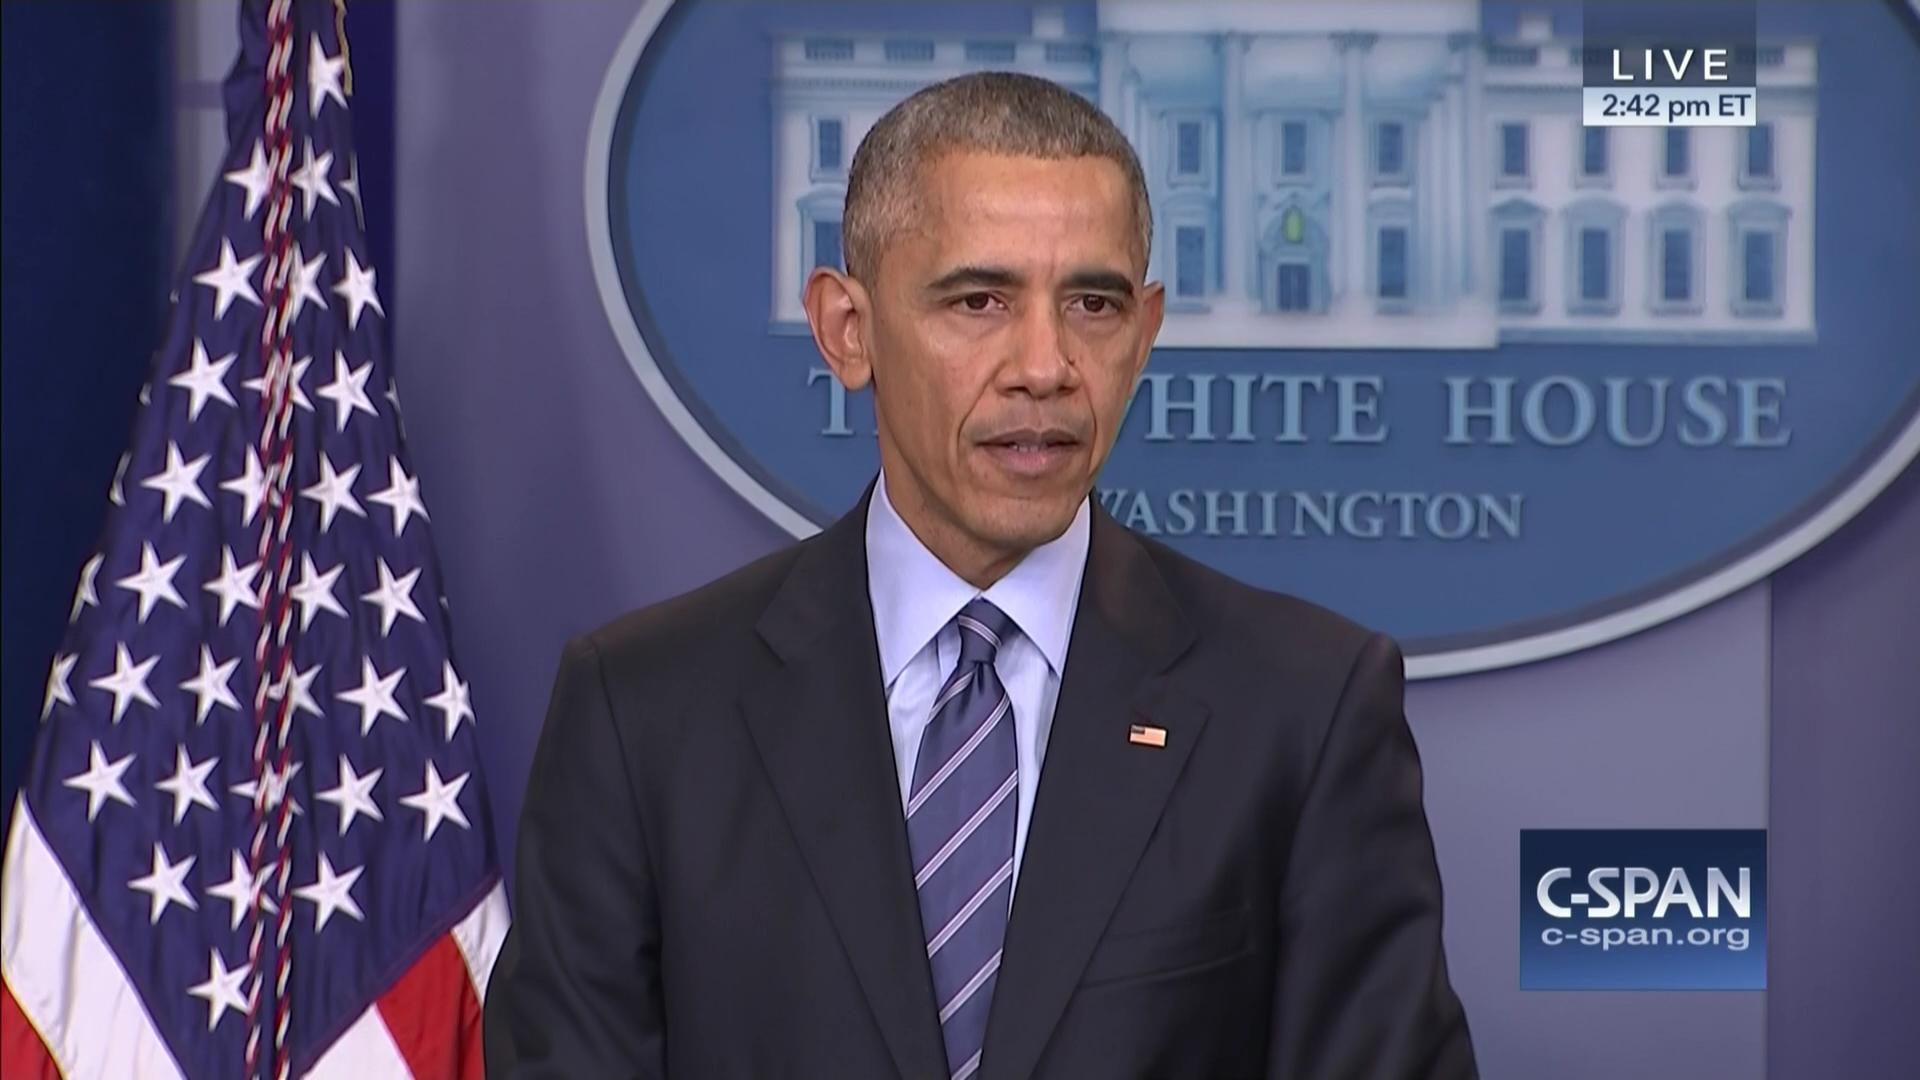 President Obama Holds End Year News Conference, Dec 16 2016 | Video ...